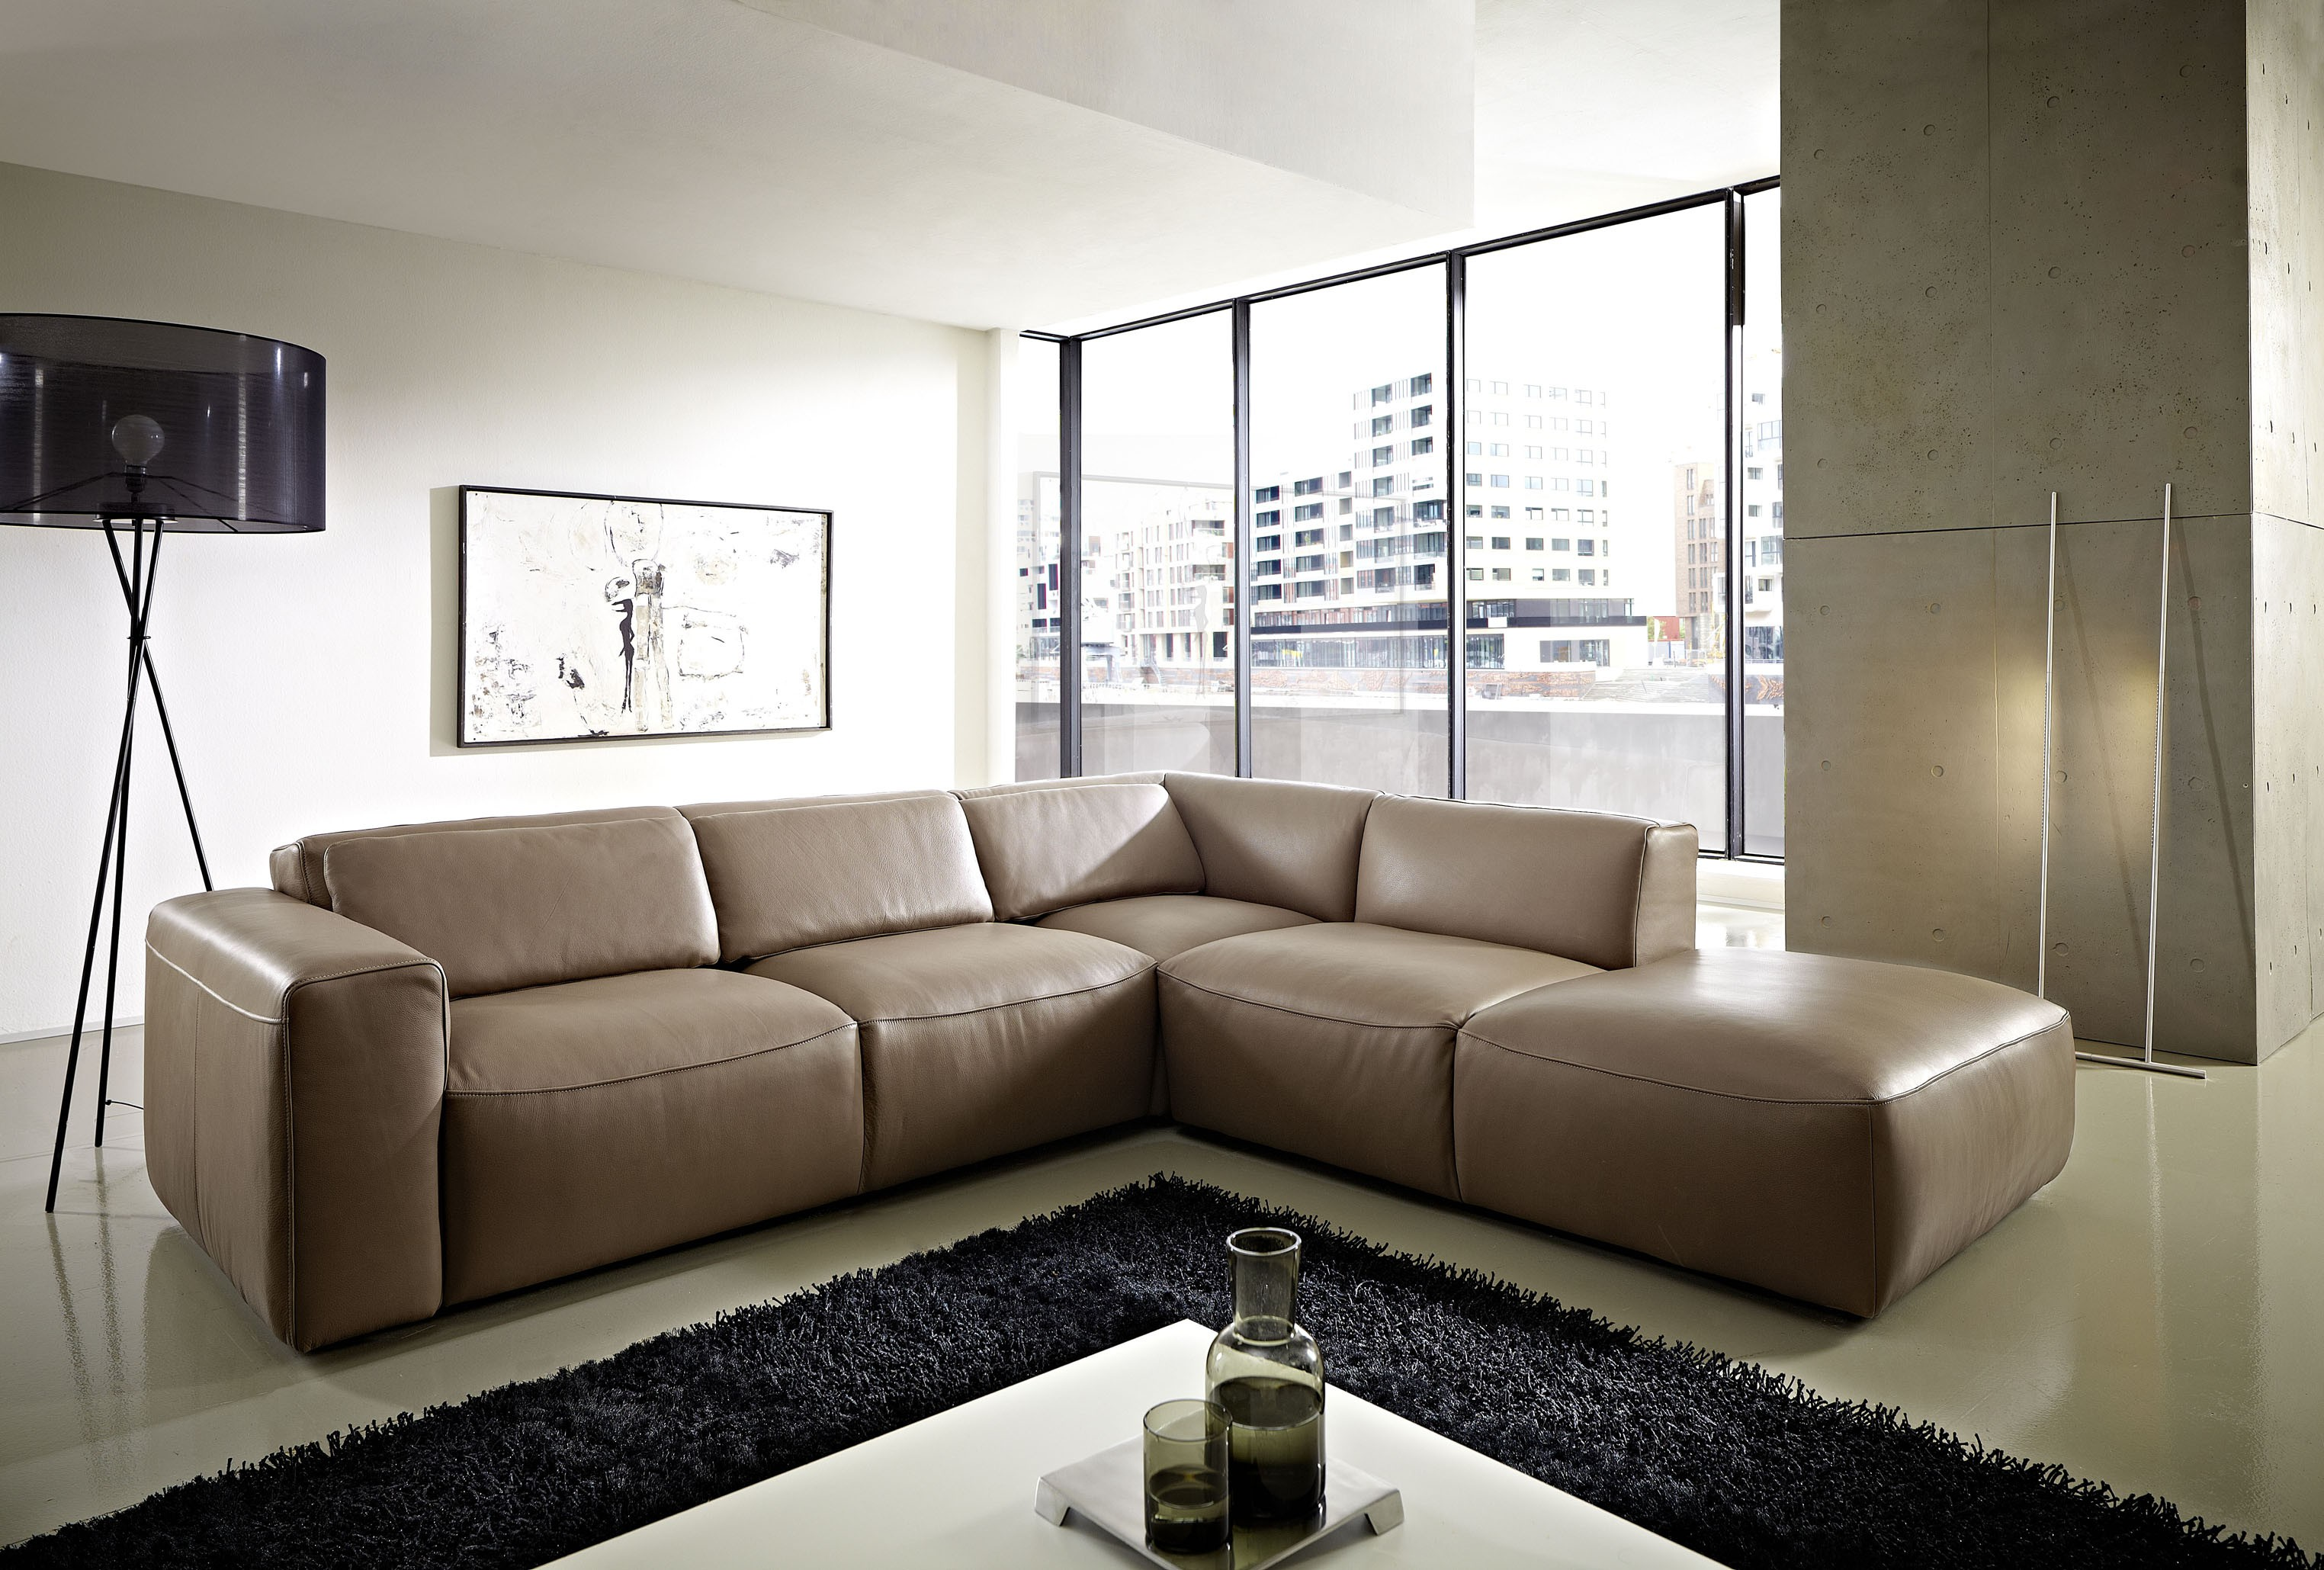 Ledersofa pure se for Designer ledersofa outlet